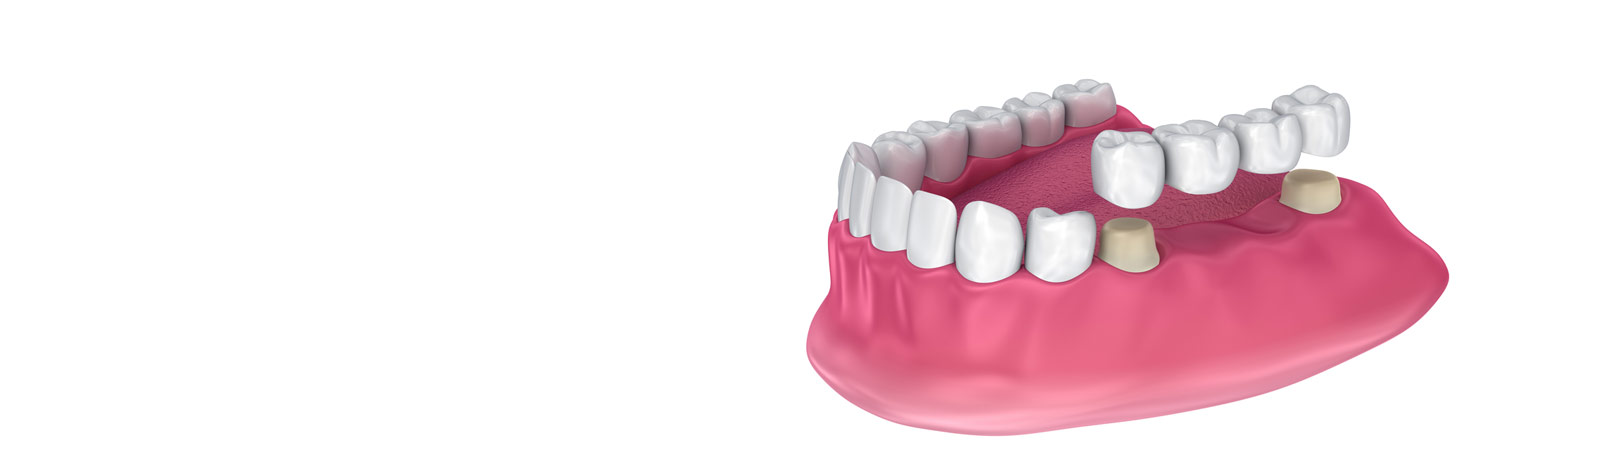 3d render of jaw and implants with dental bridge